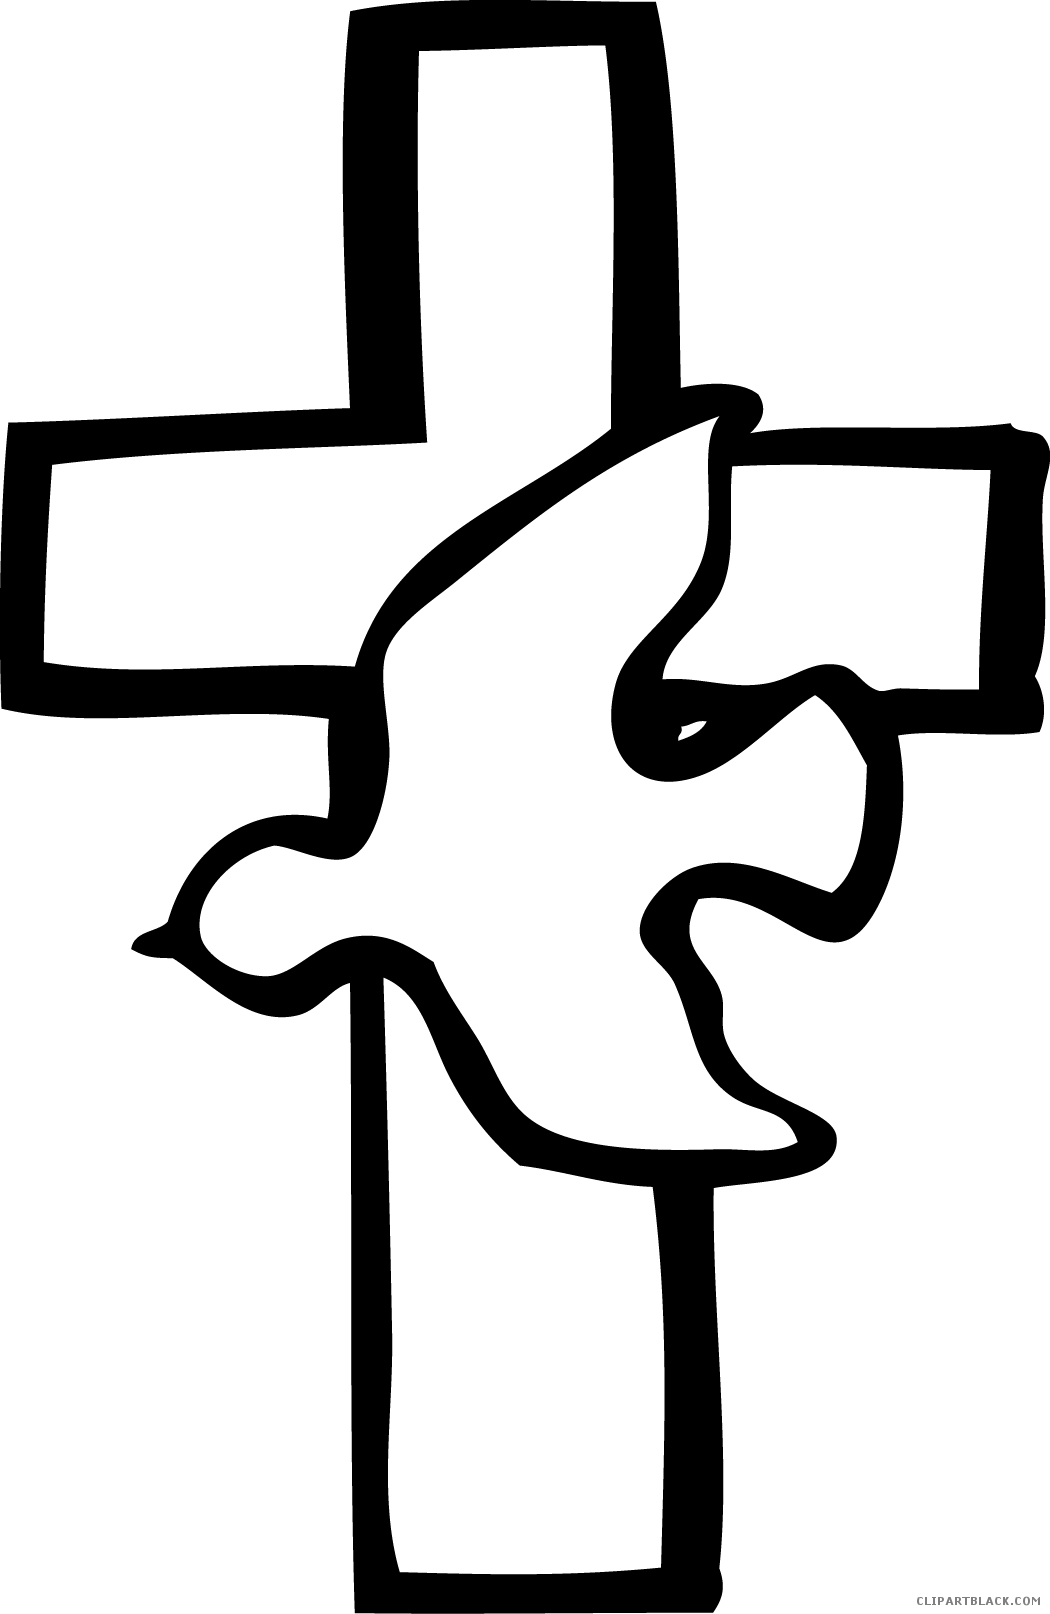 Small cross clipart svg freeuse library Cross Dove Clipart - ClipartBlack.com svg freeuse library